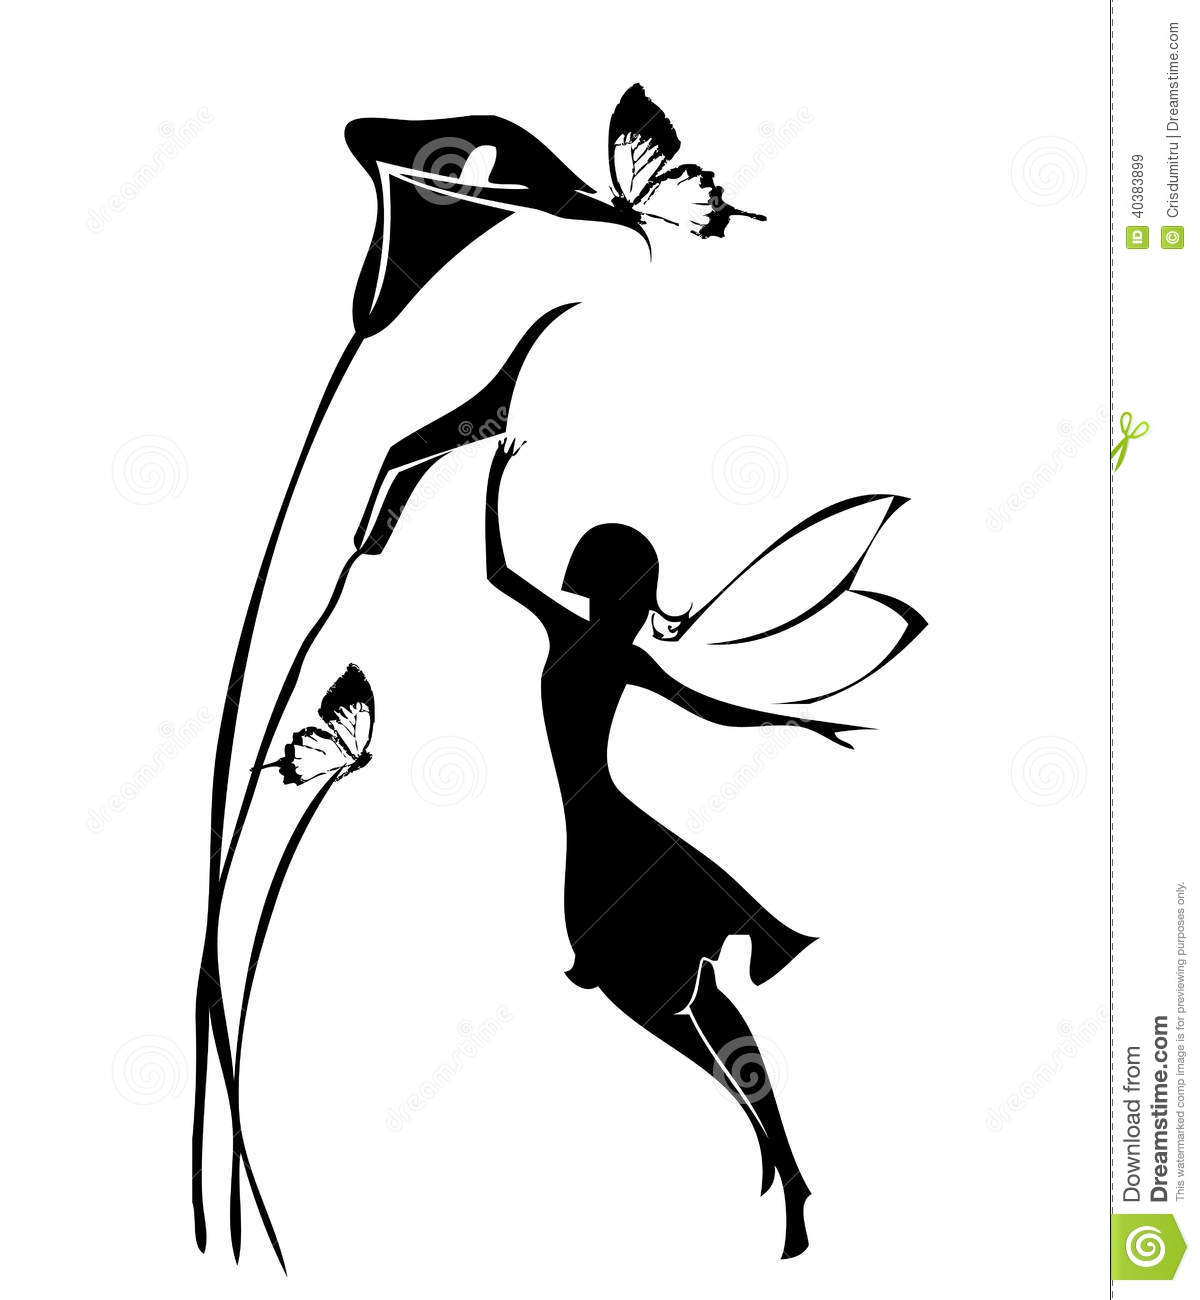 fairy silhouette stock illustration image 40383899